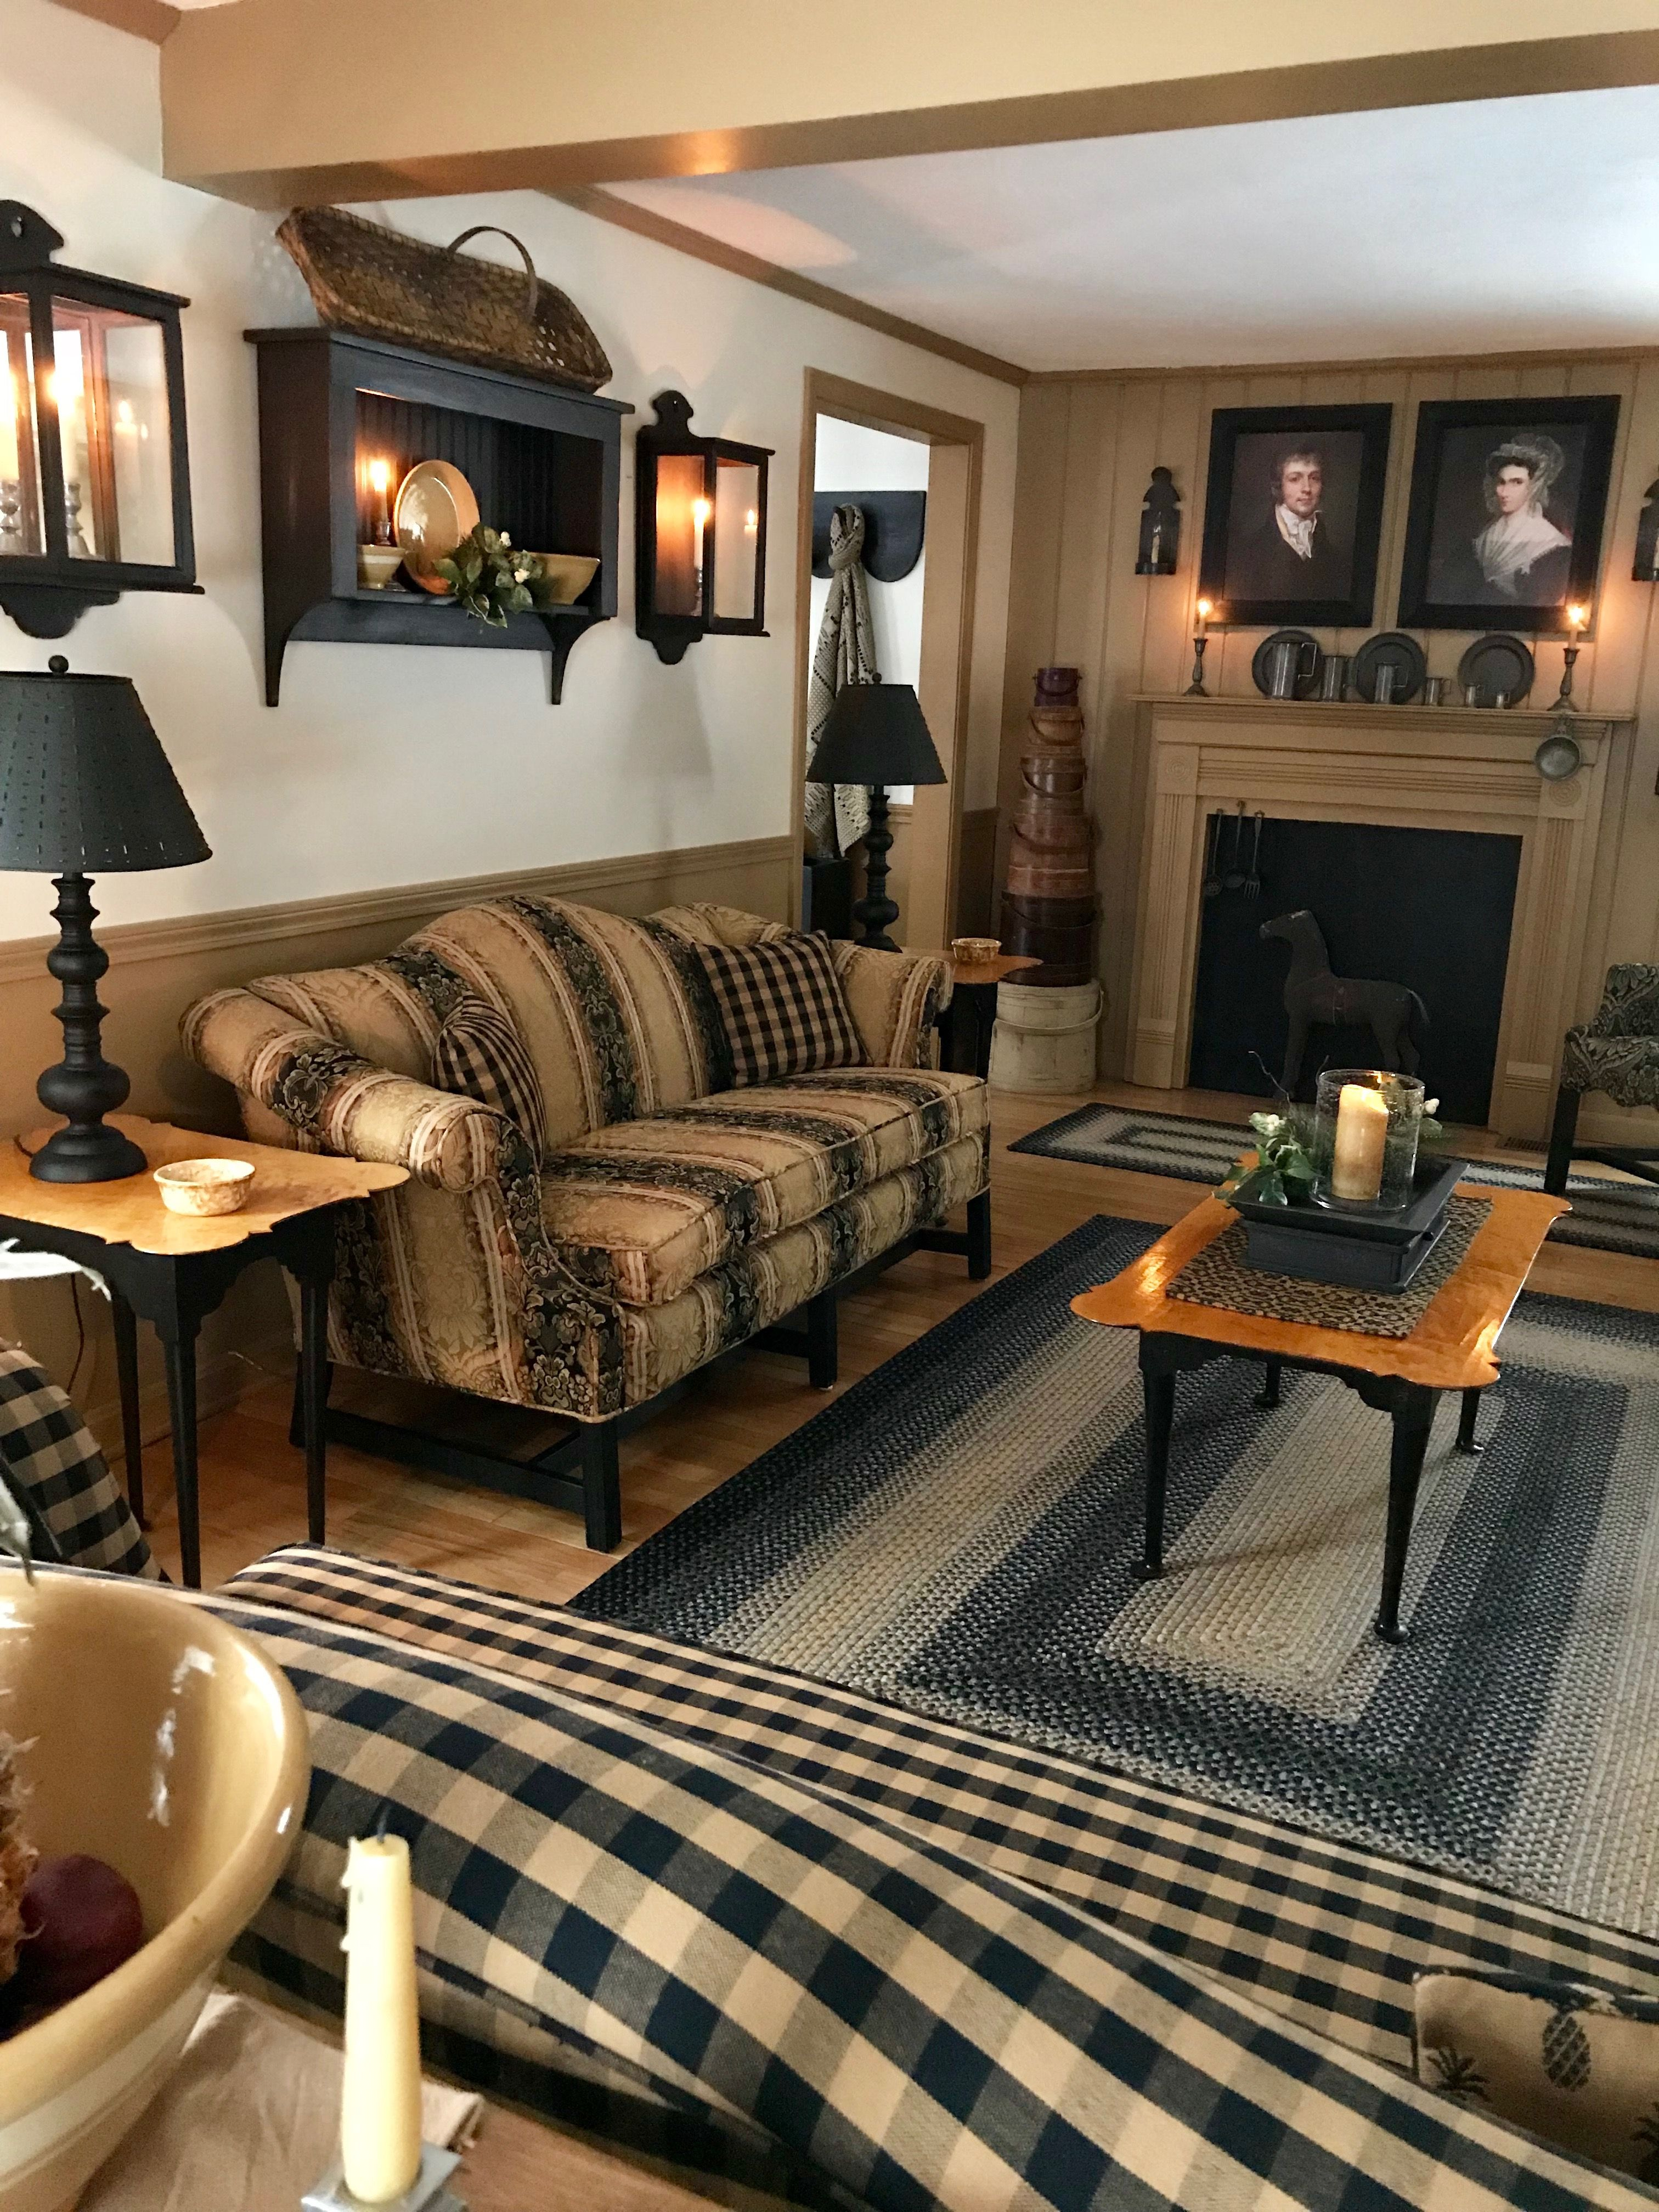 I Like This For A Family Room In The Basement Cozy And Inviting